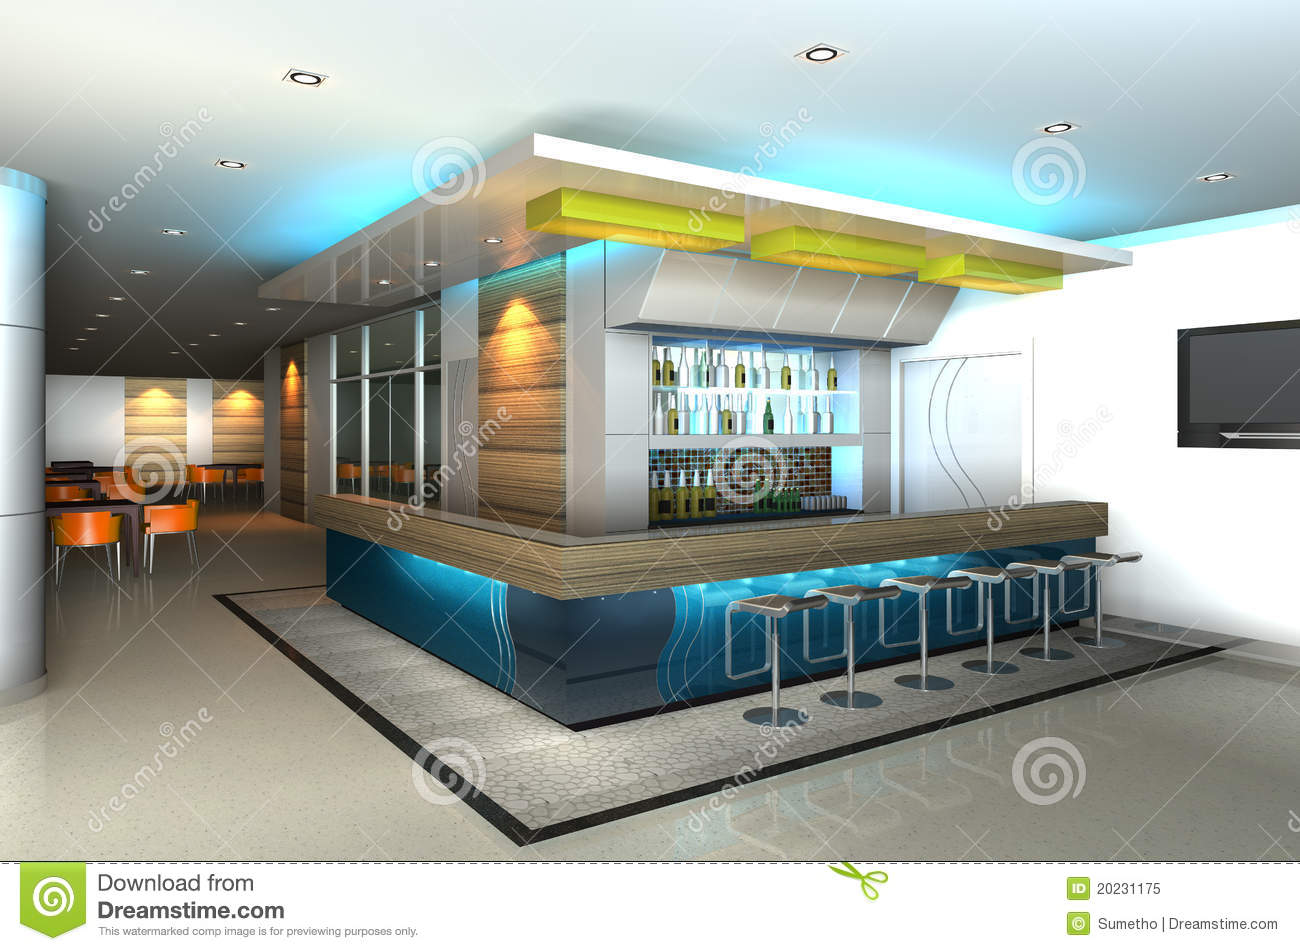 https://thumbs.dreamstime.com/z/modern-interior-3d-counter-bar-20231175.jpg